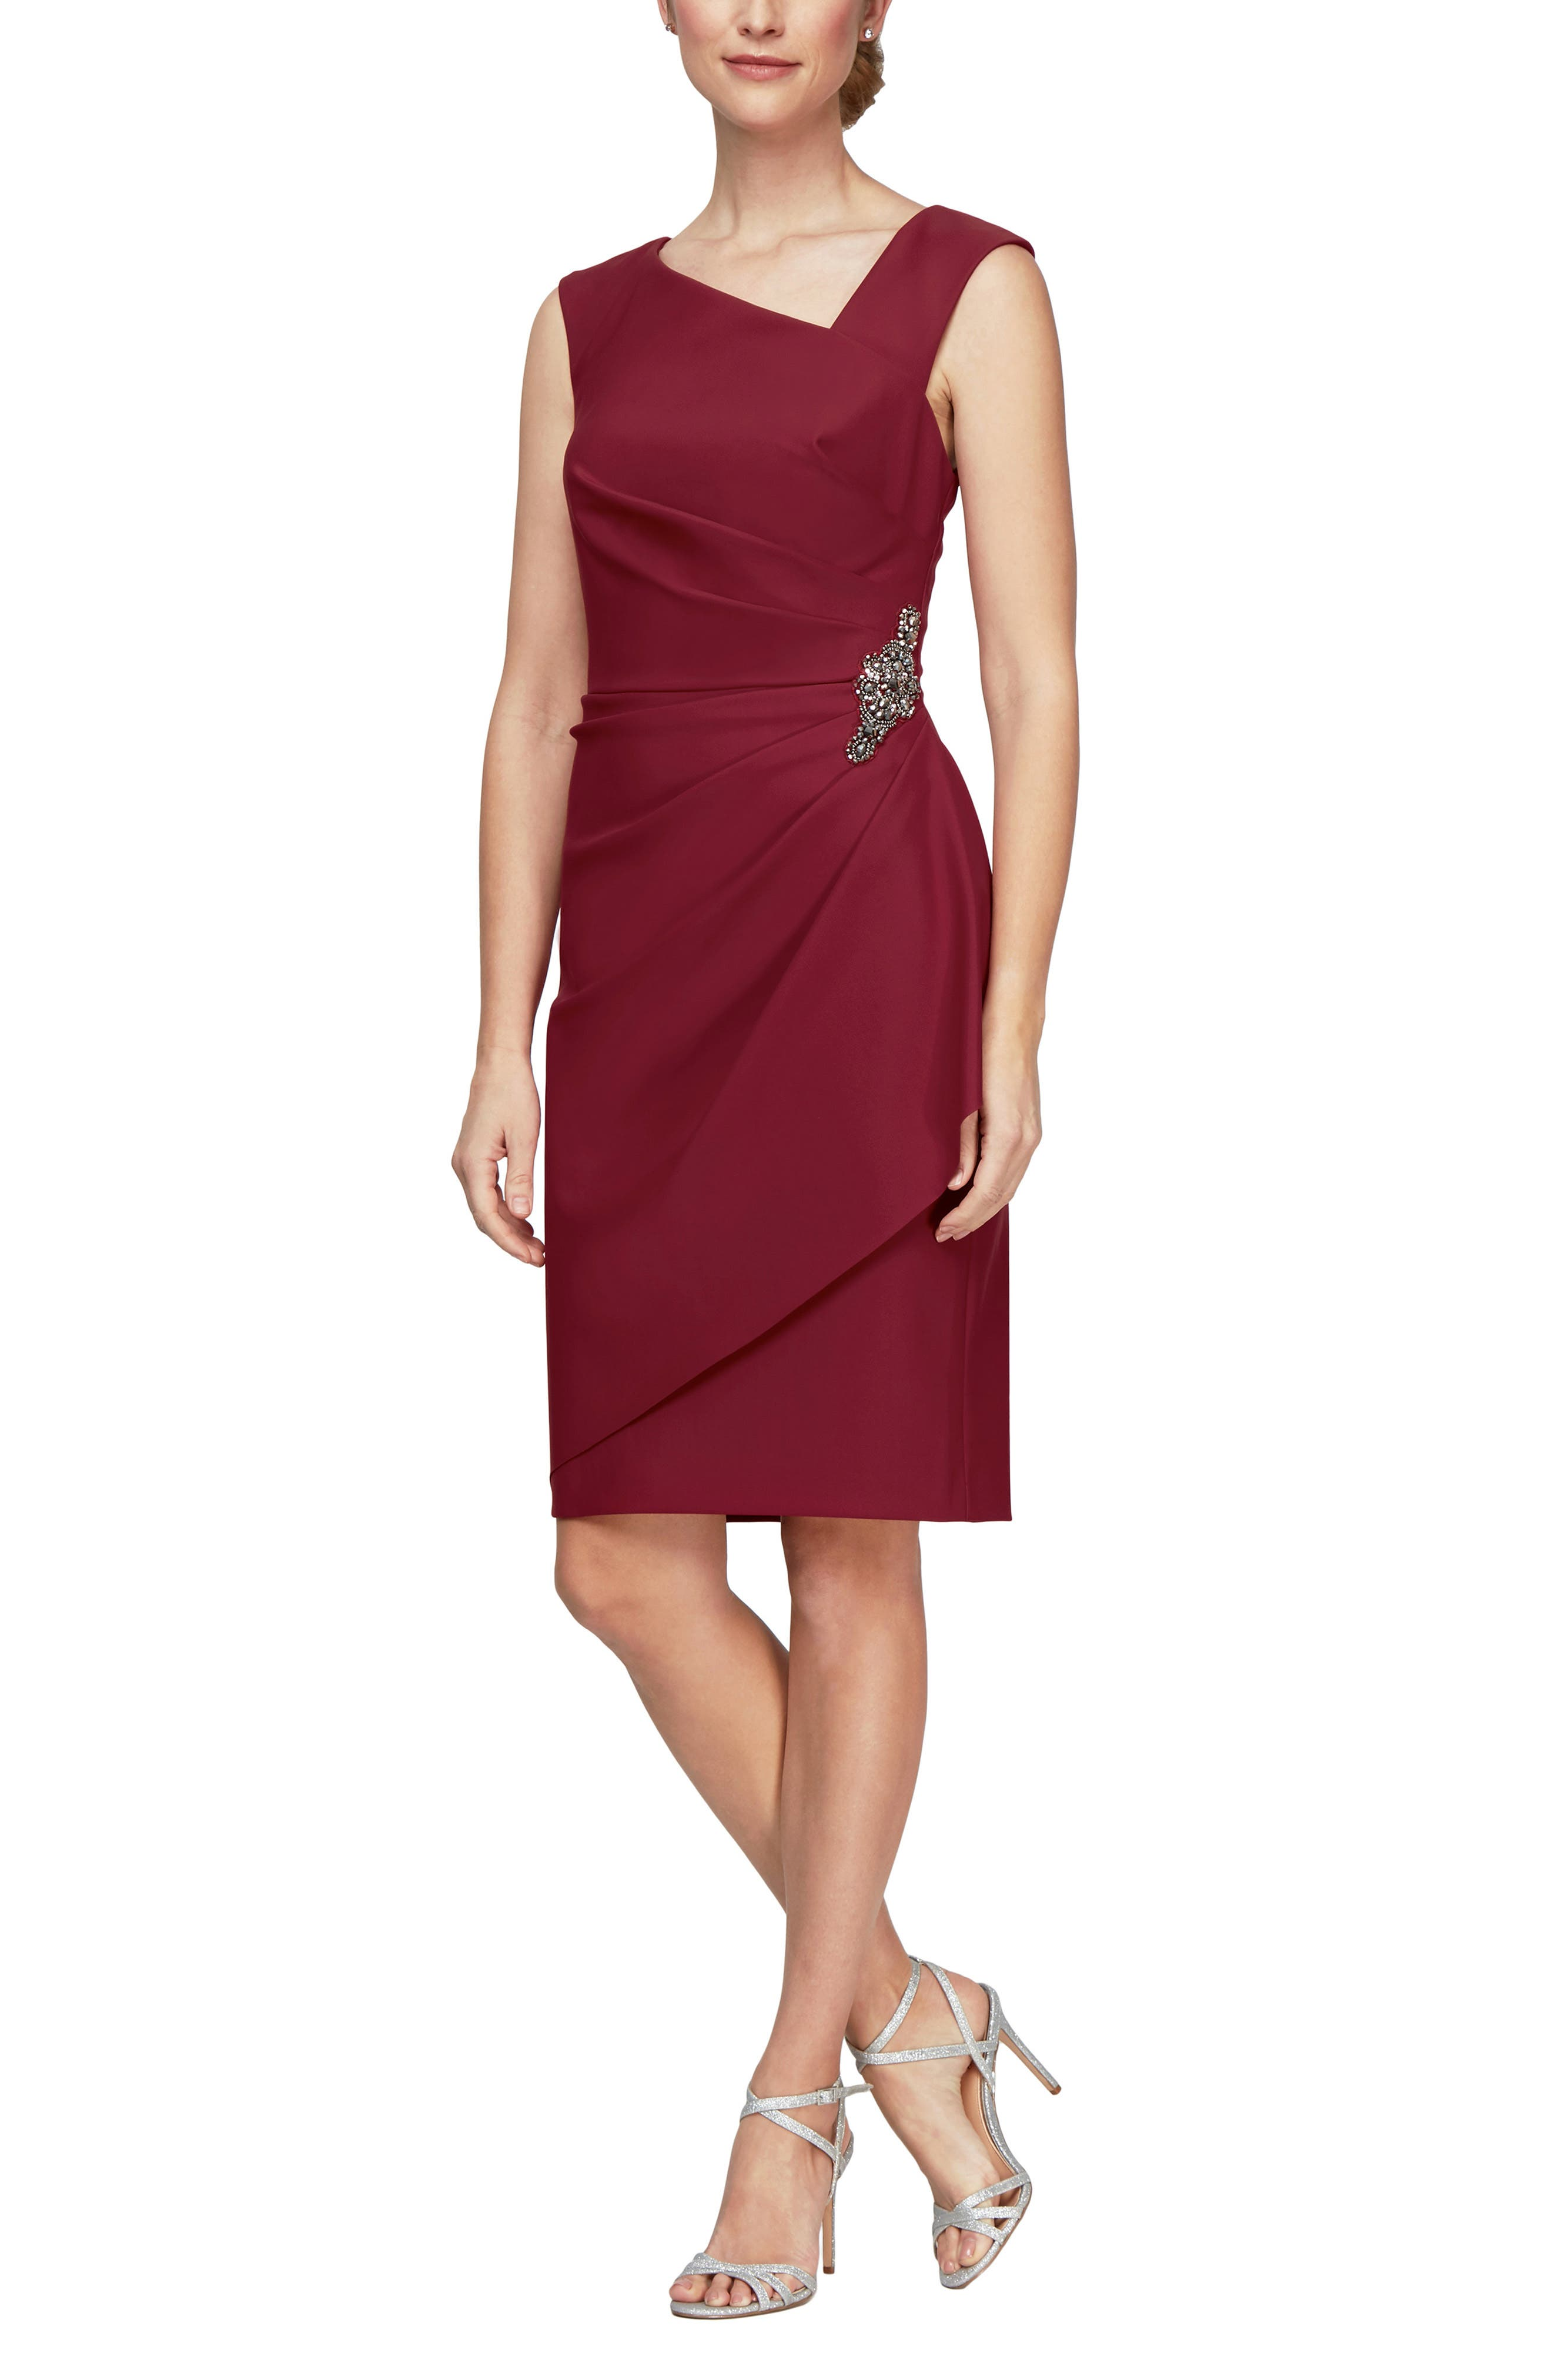 Steal this show in this sleeveless dress with a stunning asymmetrical neckline featuring figure-enhancing gathers punctuated with a sparkly side brooch. Style Name: Alex Evenings Sleeveless Sheath Dress. Style Number: 6128355. Available in stores.